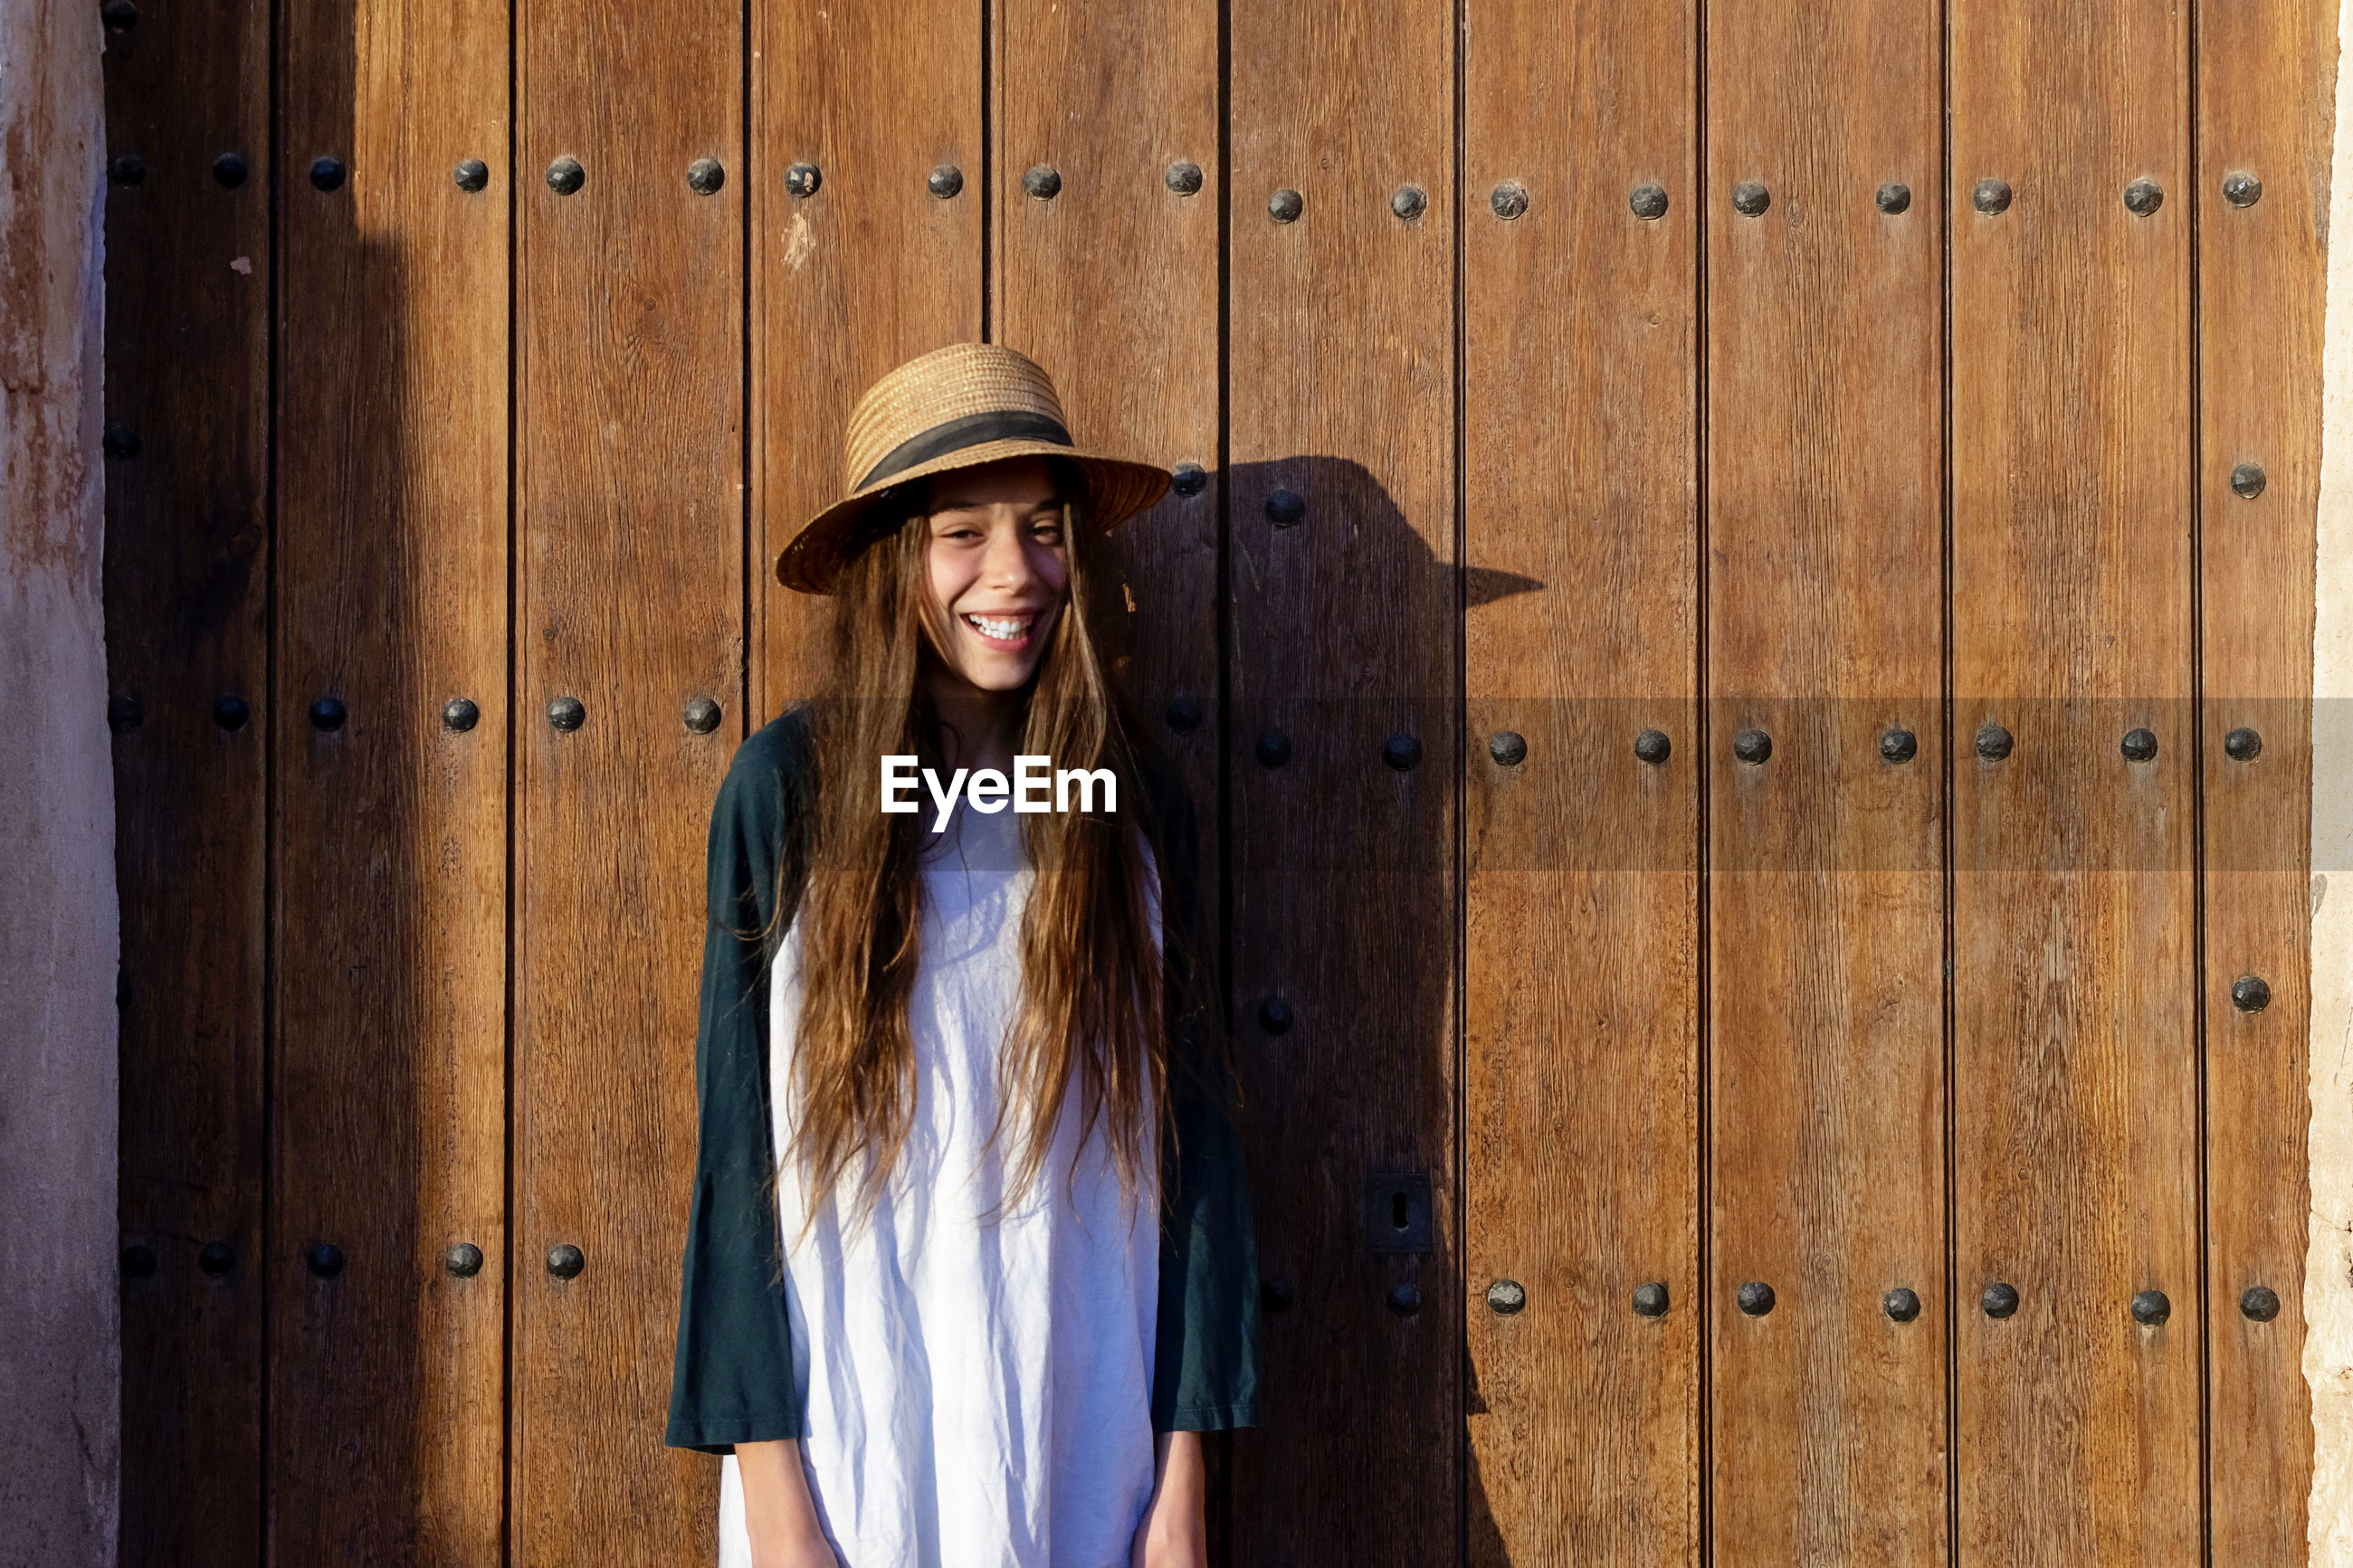 Portrait of young woman wearing hat standing against wooden wall